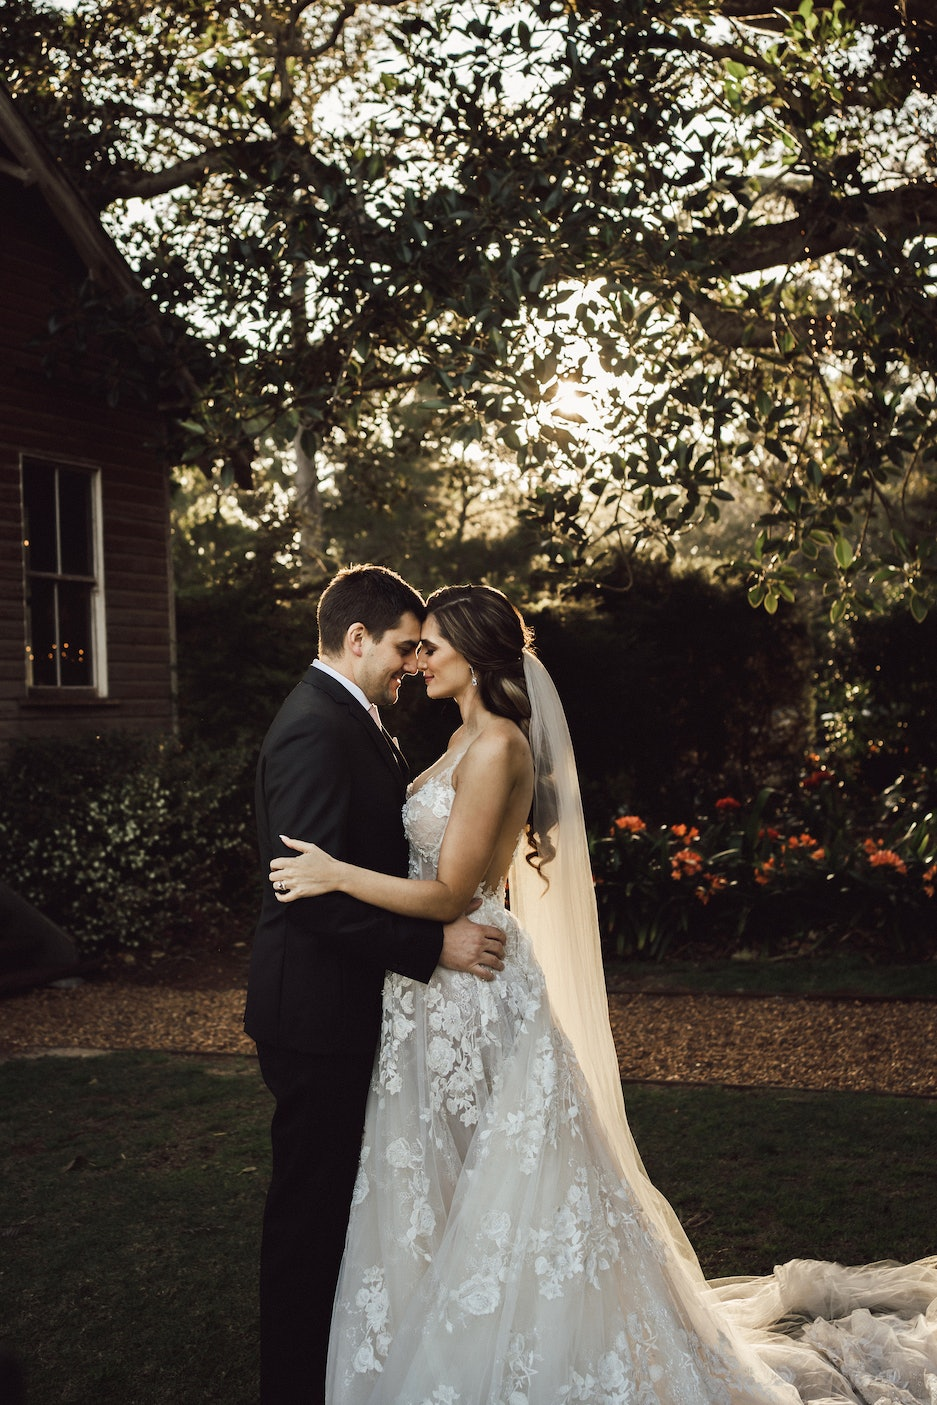 Bride and groom holding one another with their noses touching gently